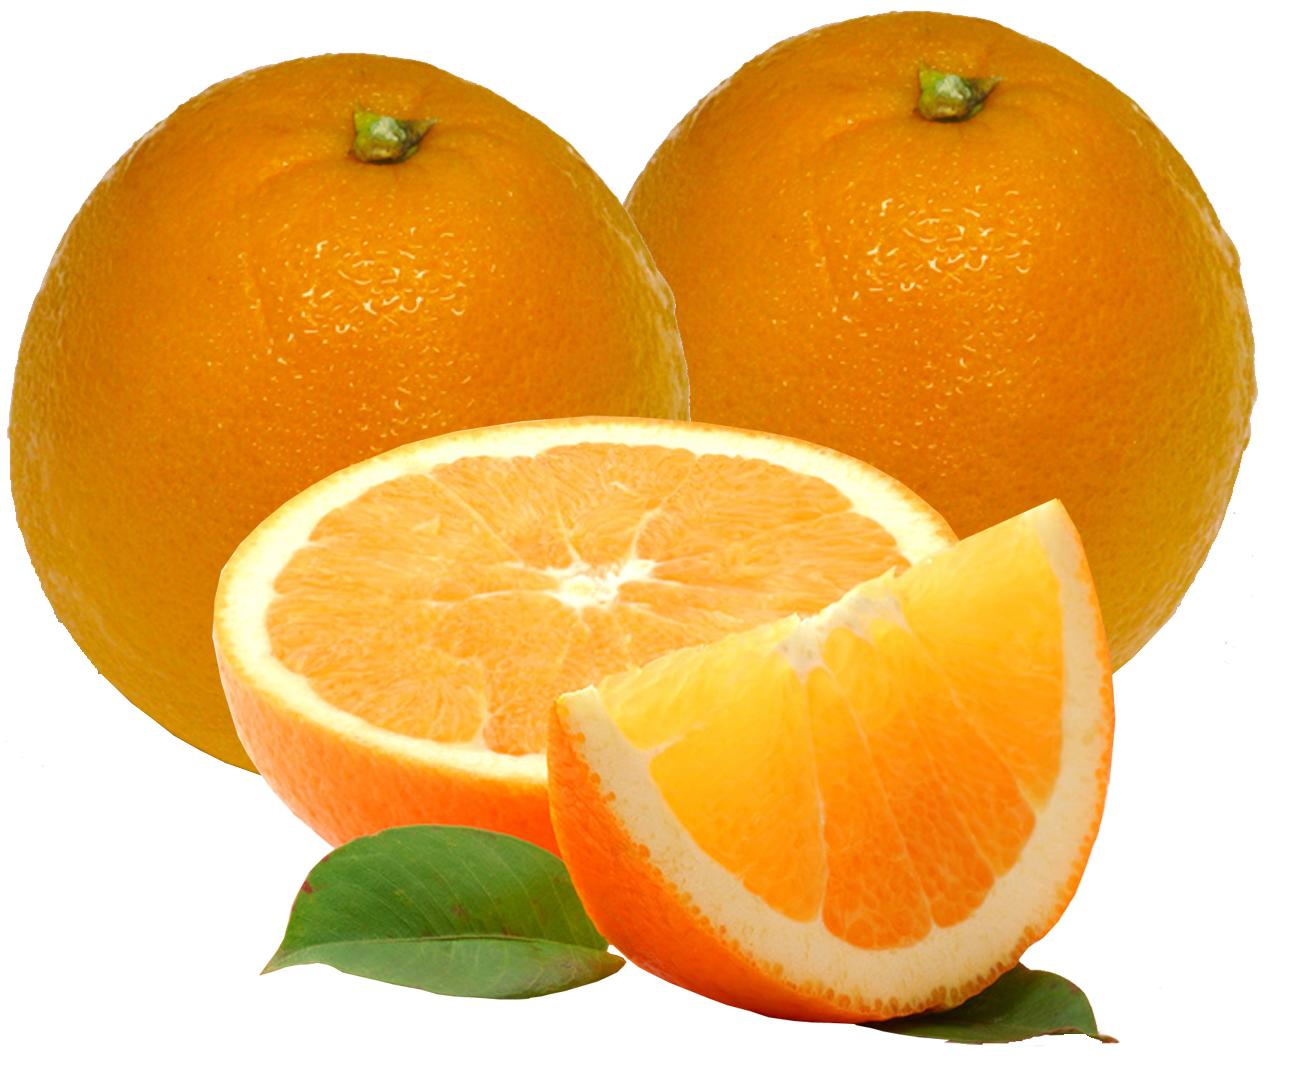 ORANGES are rich and delicious source of vitamin C , potassium, folic acid, soluble fibre. Weather it's navel oranges or the cute, little mandarin oranges, enjoy them on their own or mixed with other fruits.